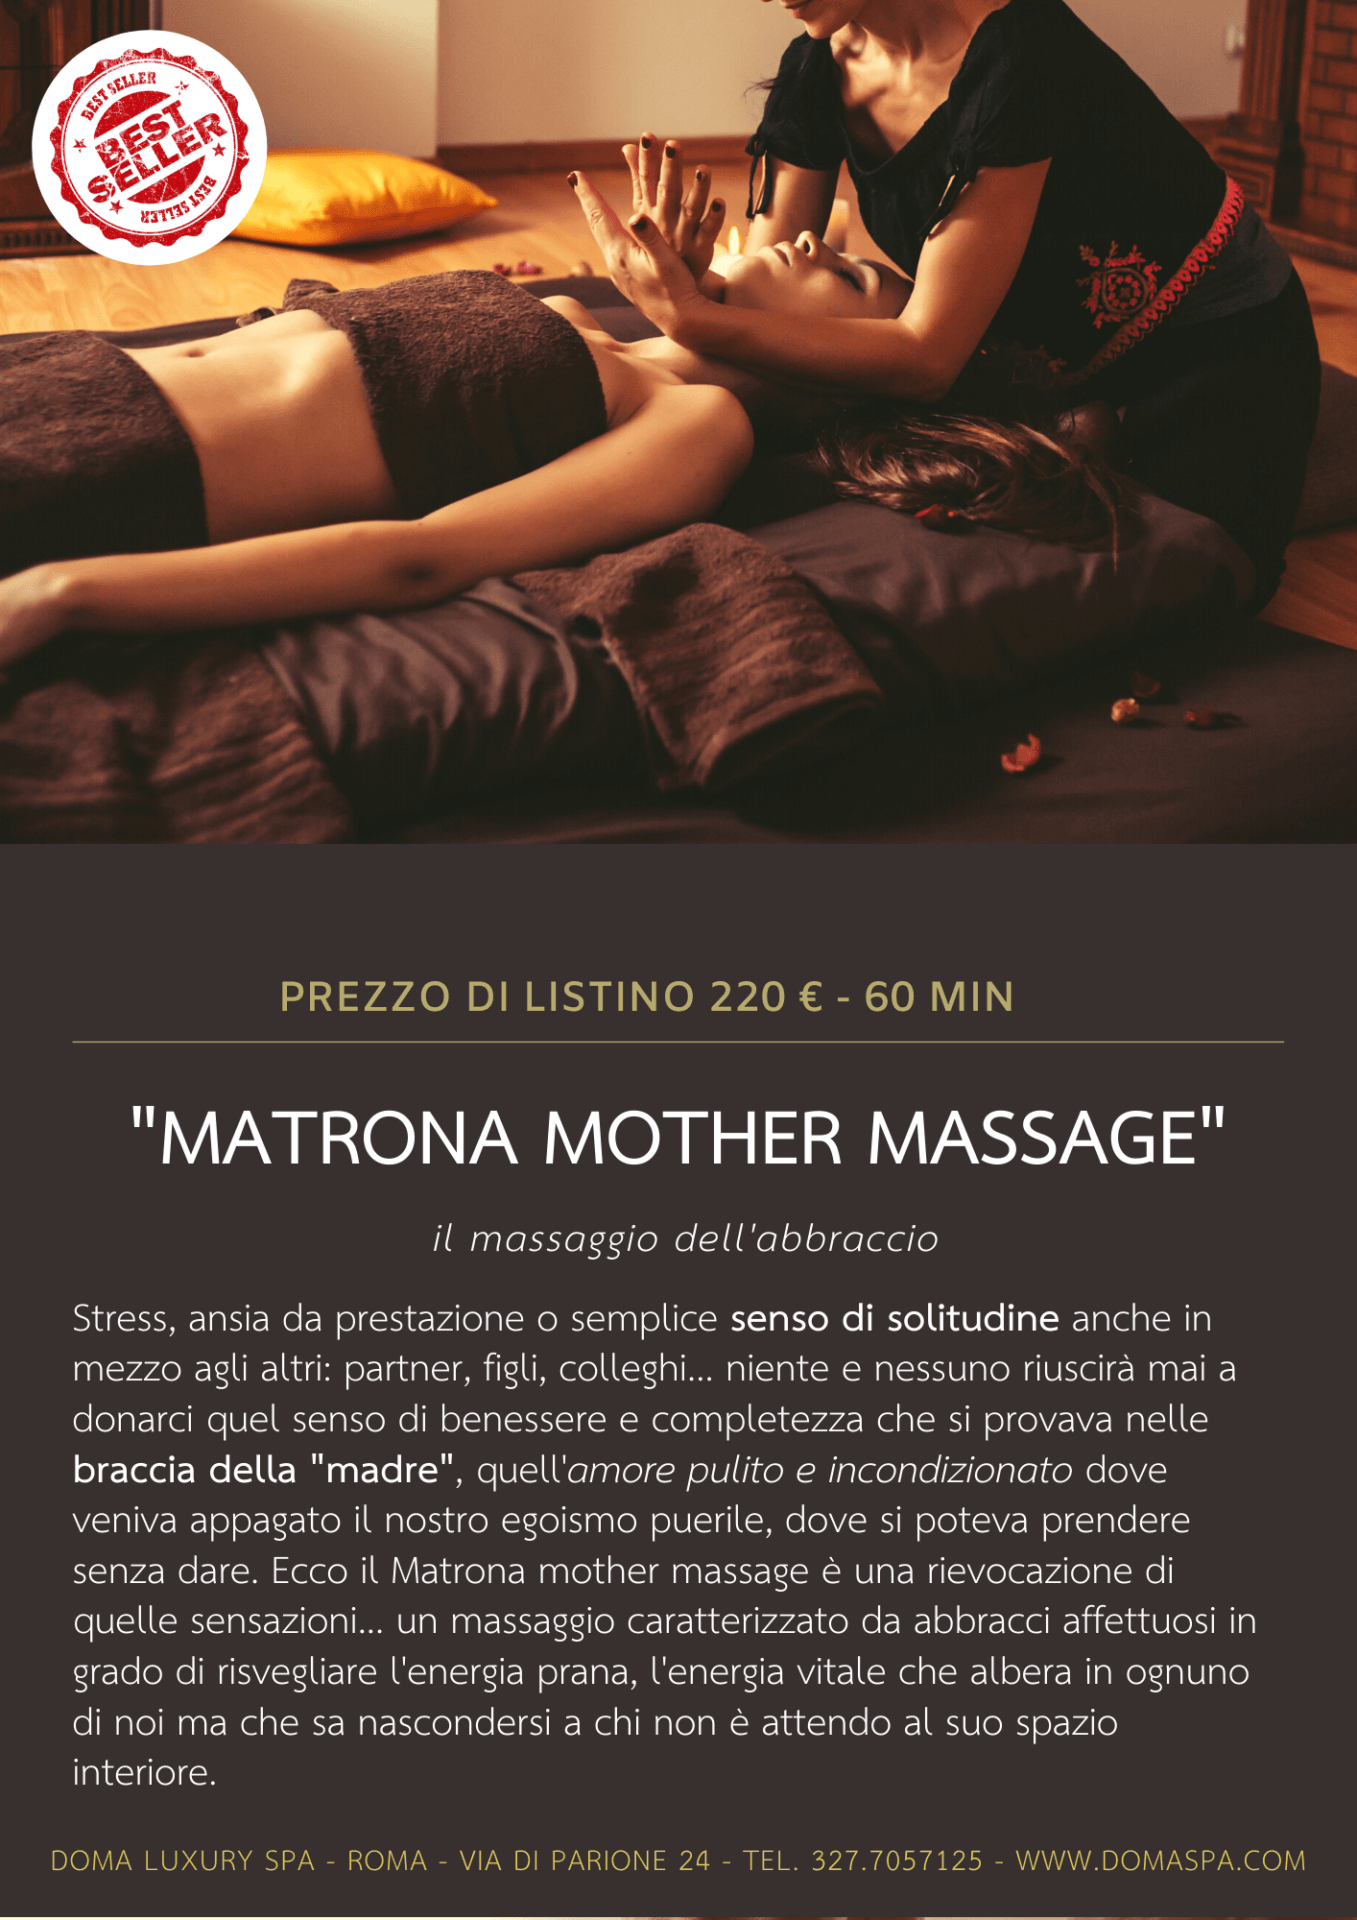 matrona mother massage